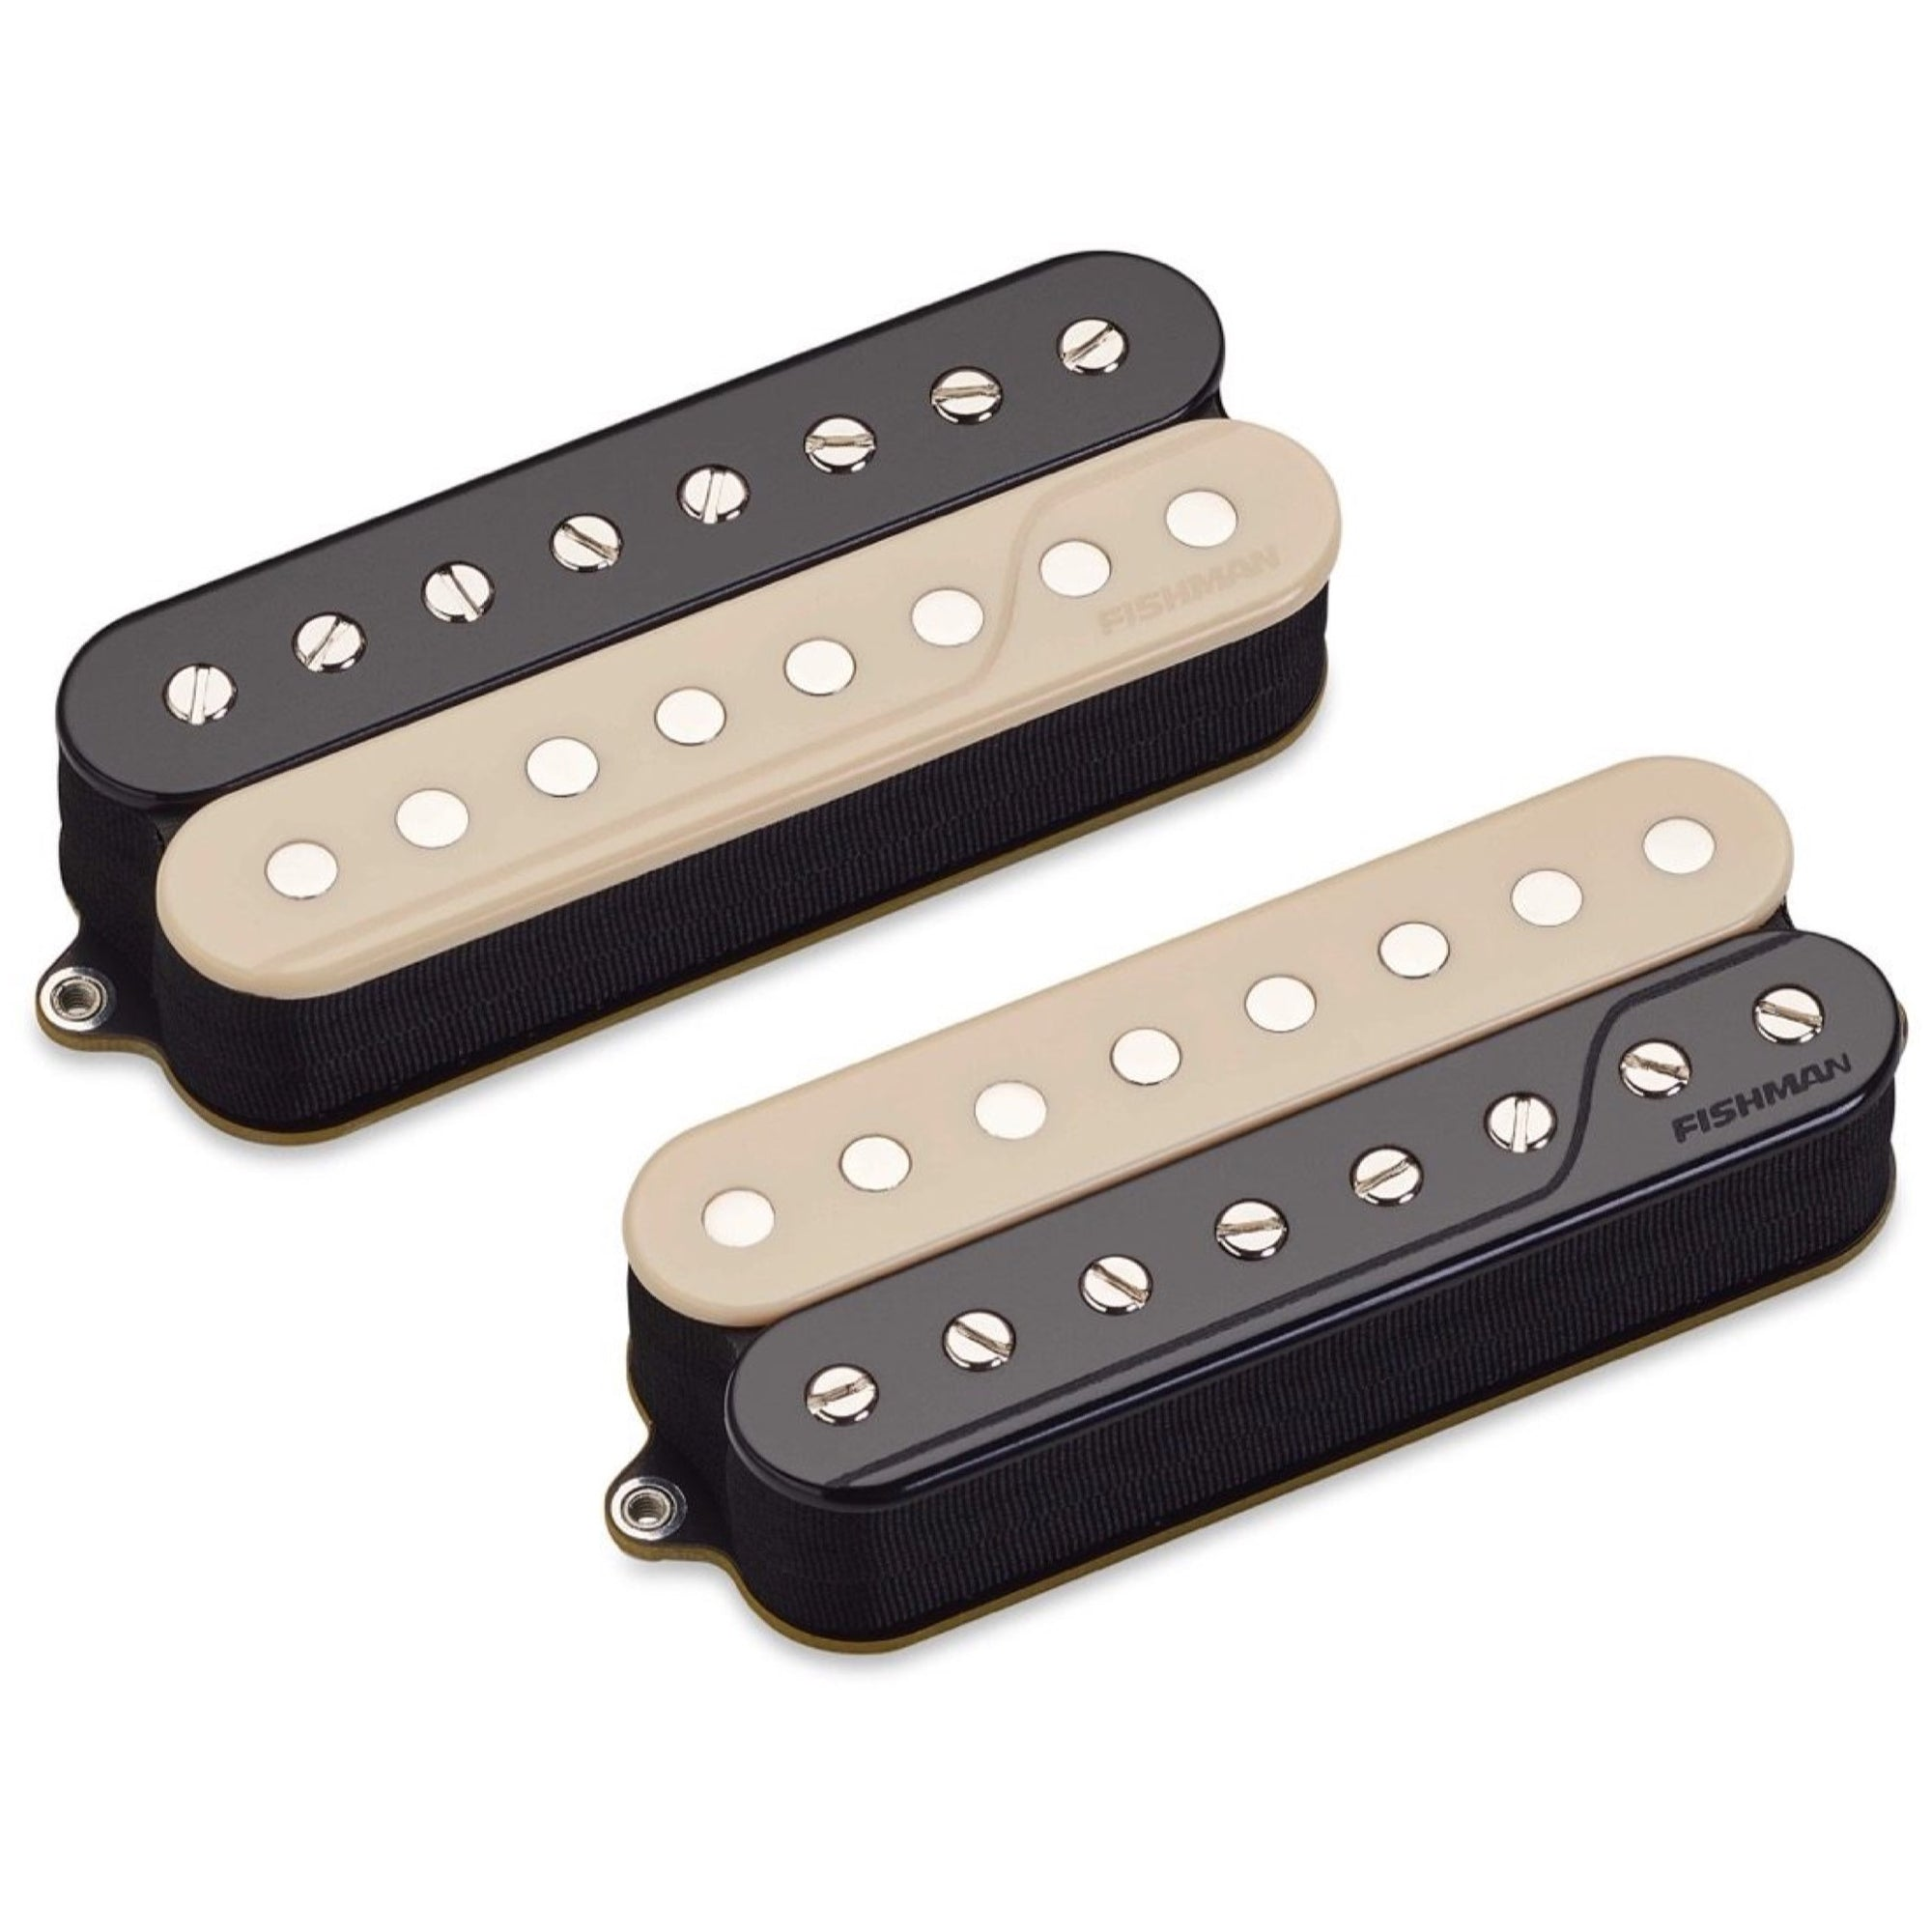 Fishman Open Core Fluence Classic Humbucker 8-String Pickup, Zebra, Set, Reverse Wound